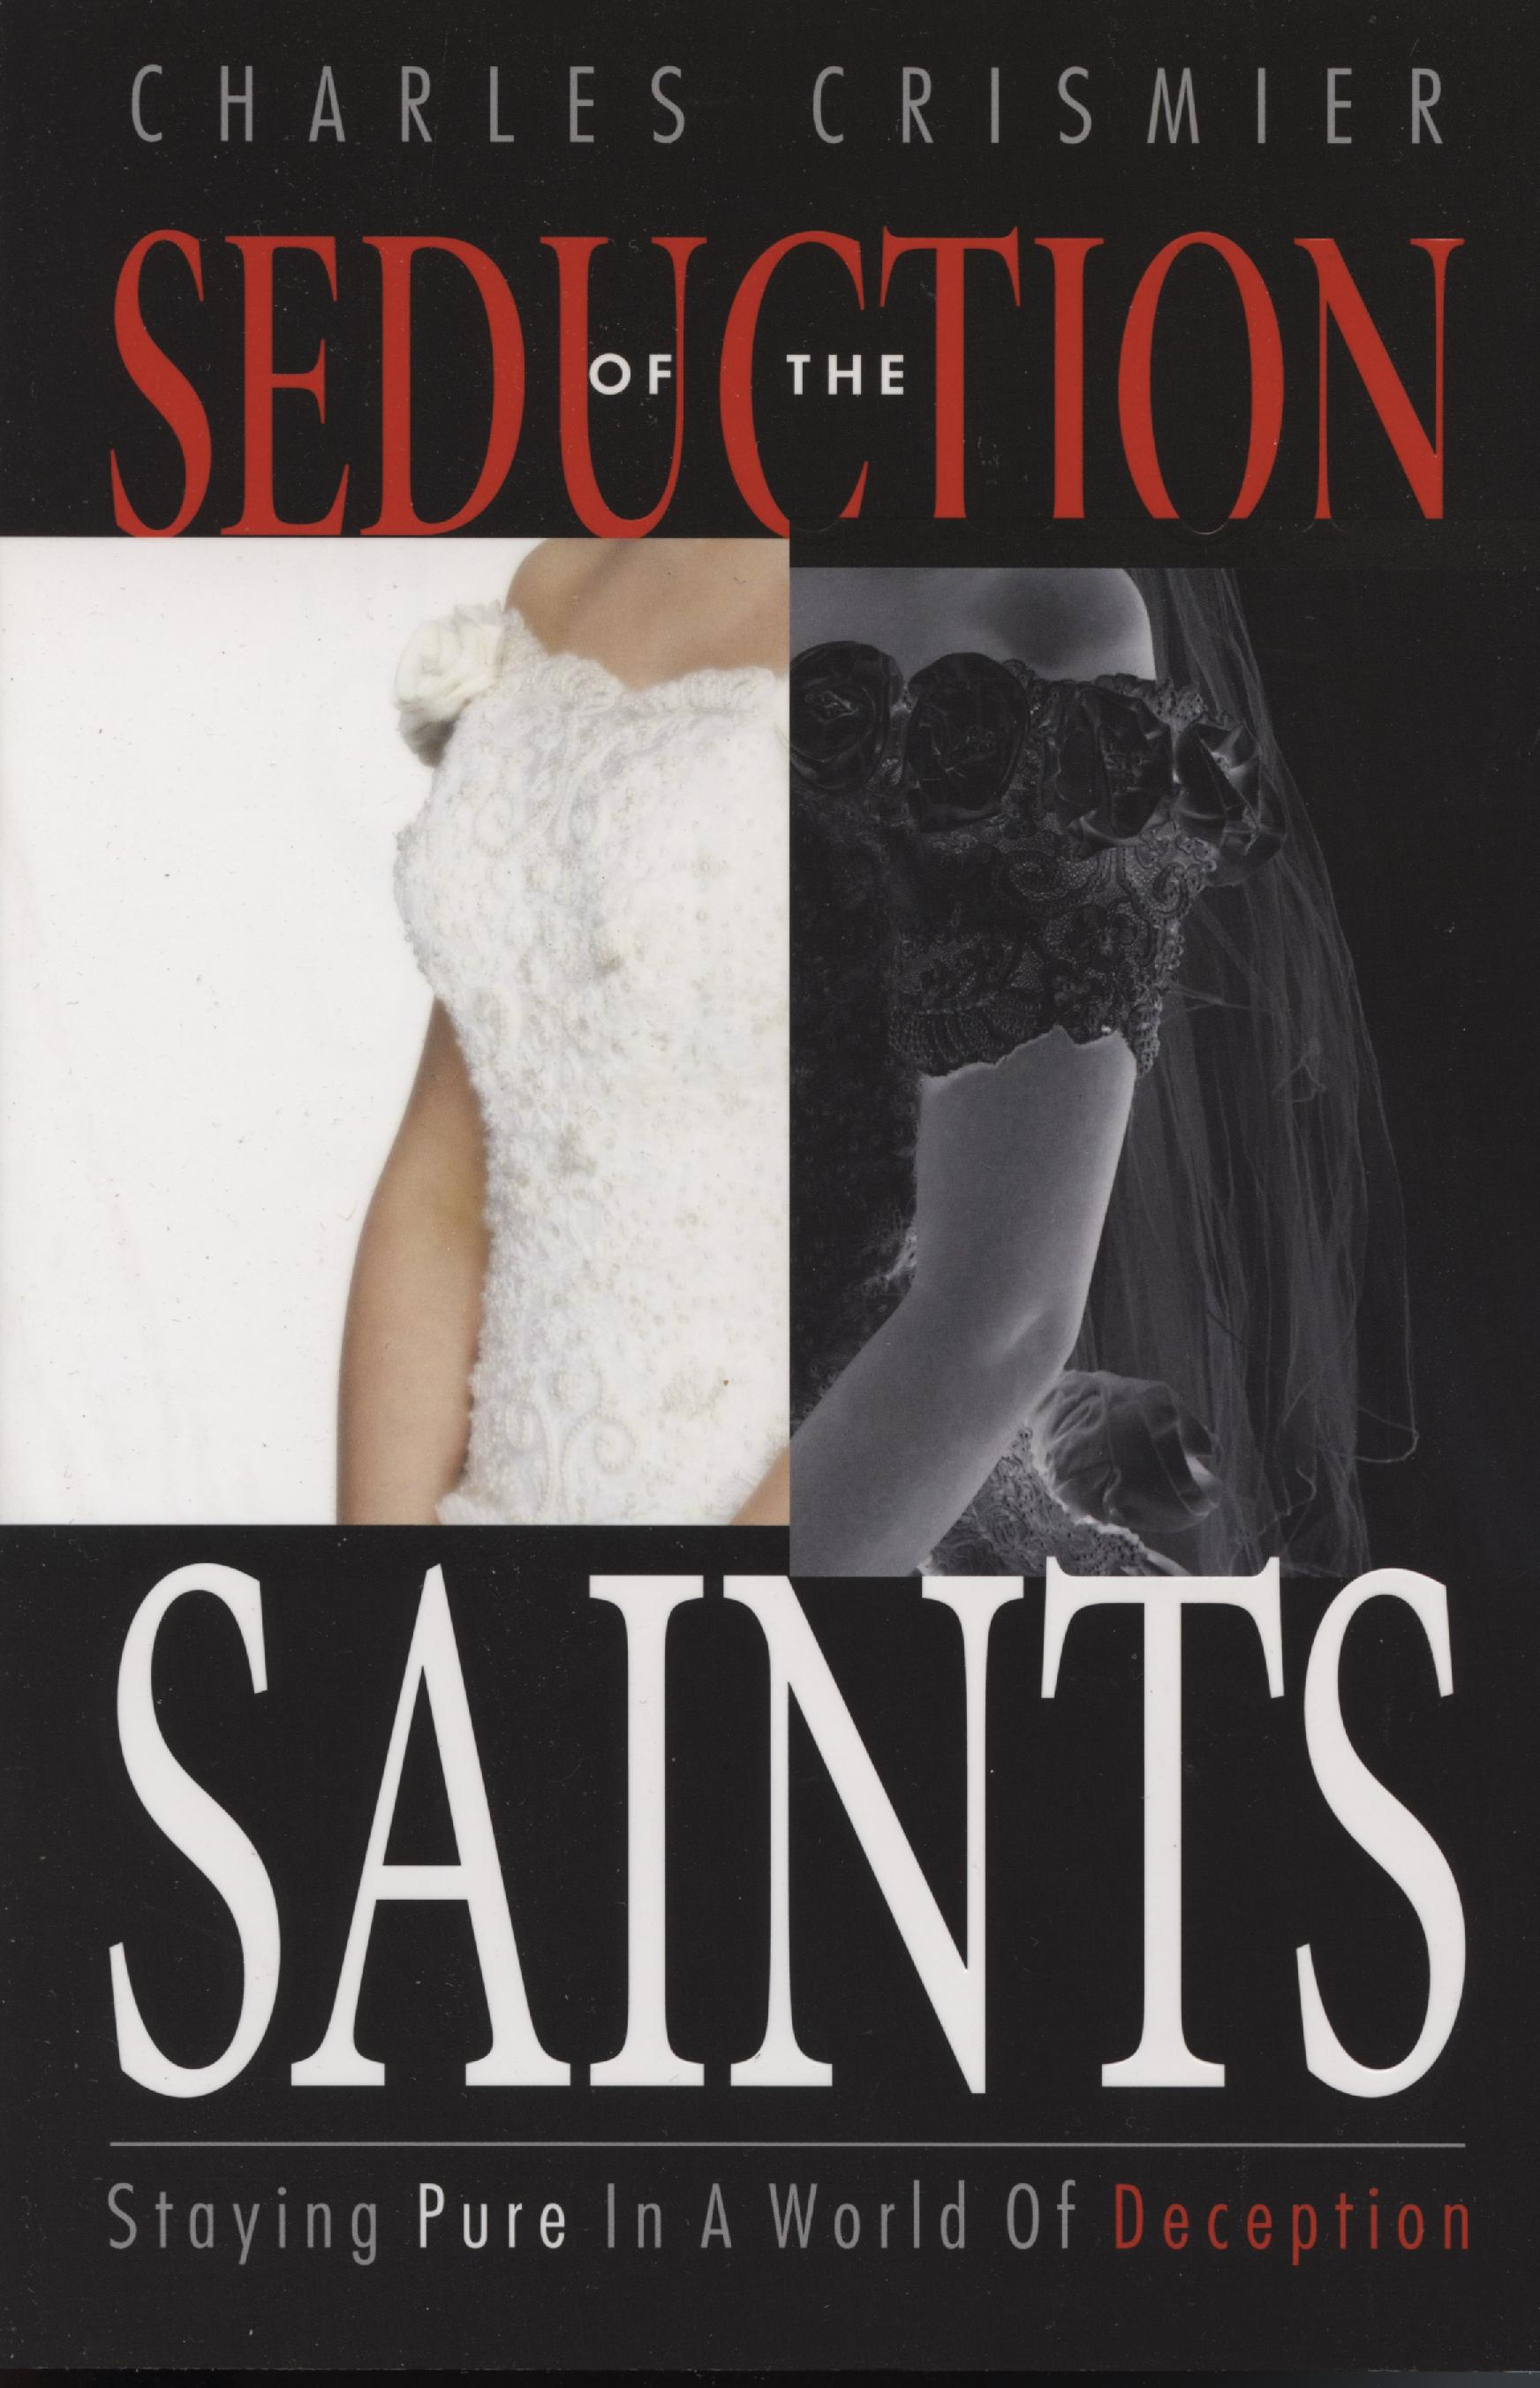 Seduction of the Saints